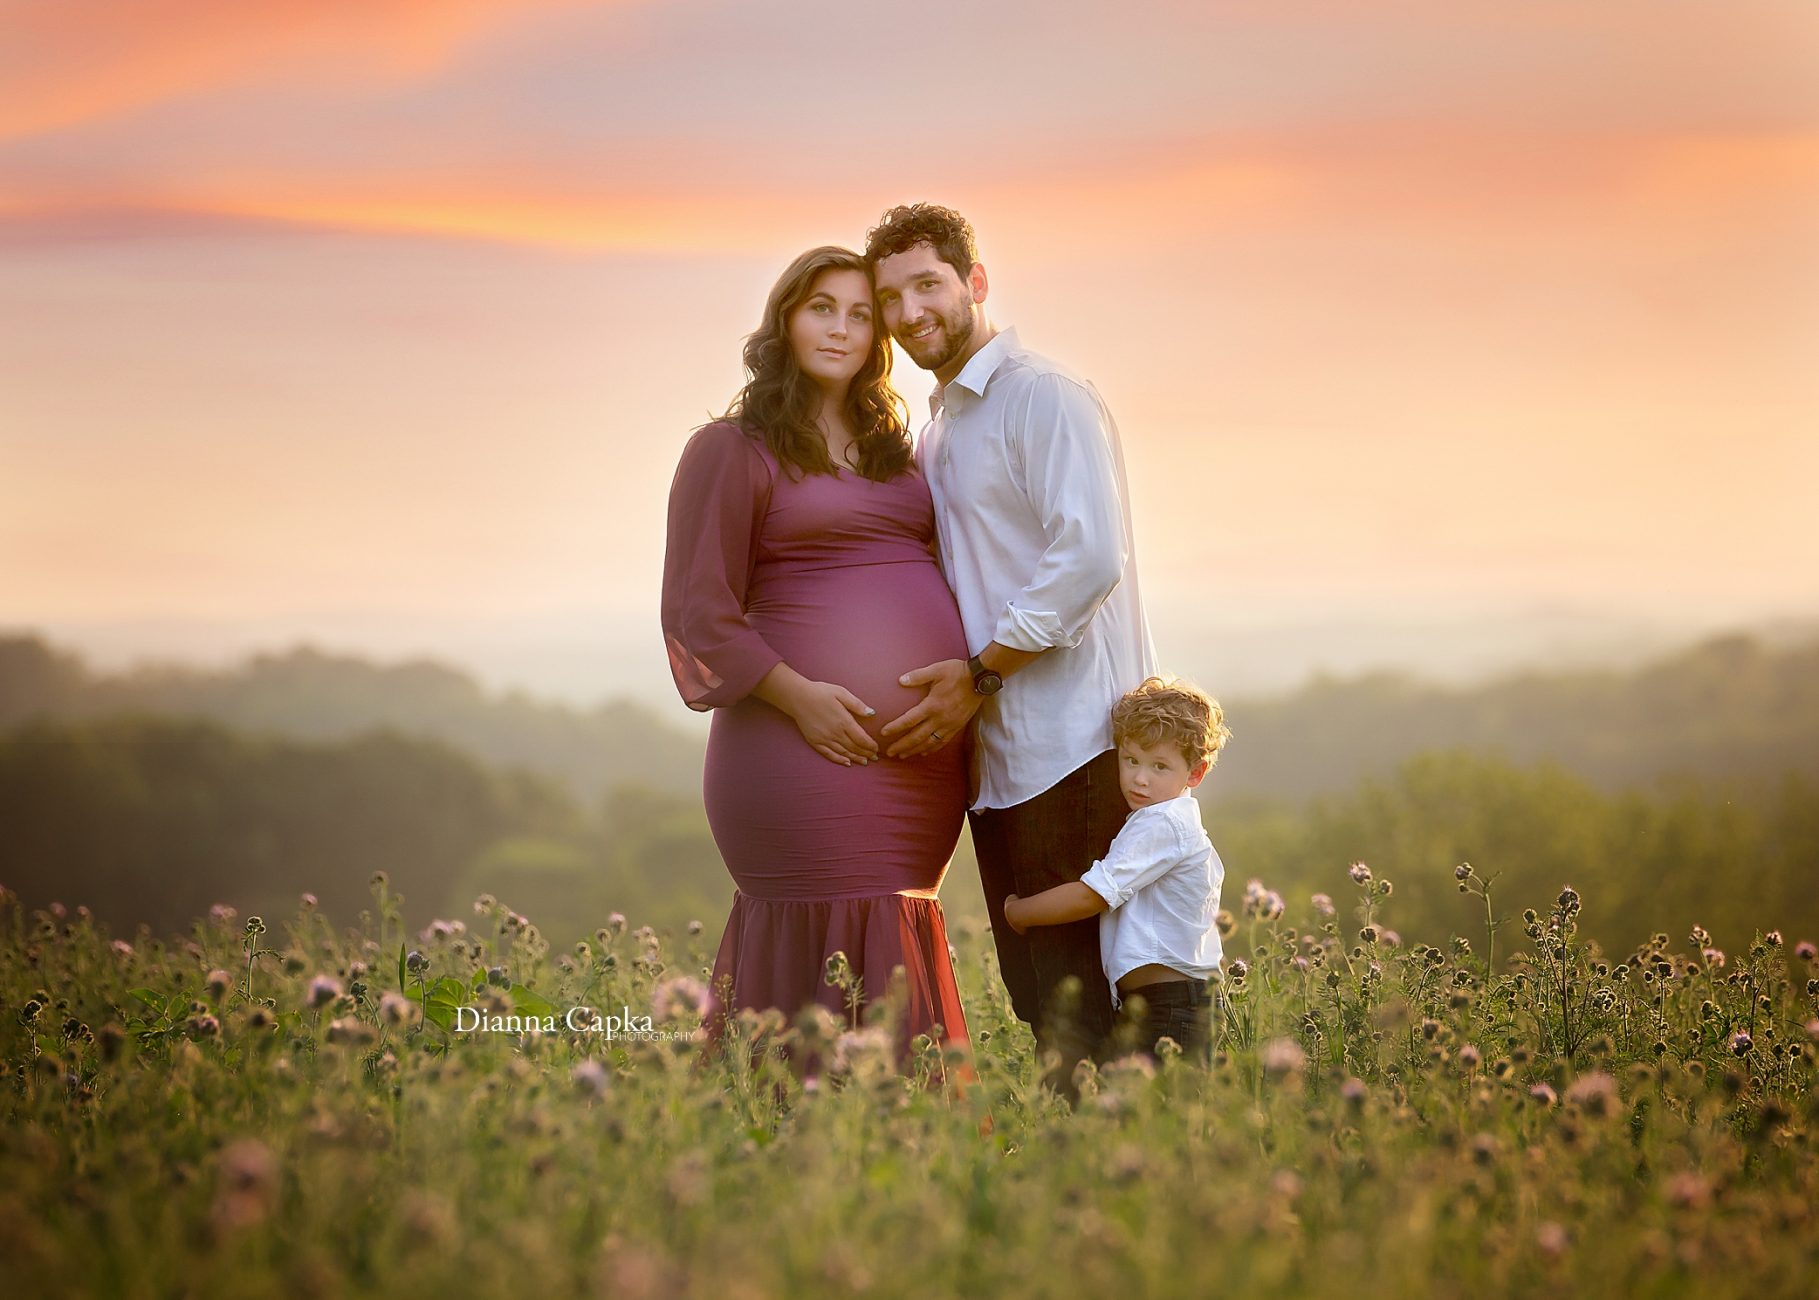 Lancaster PA central PA maternity photographer ephrata pa chester county pa